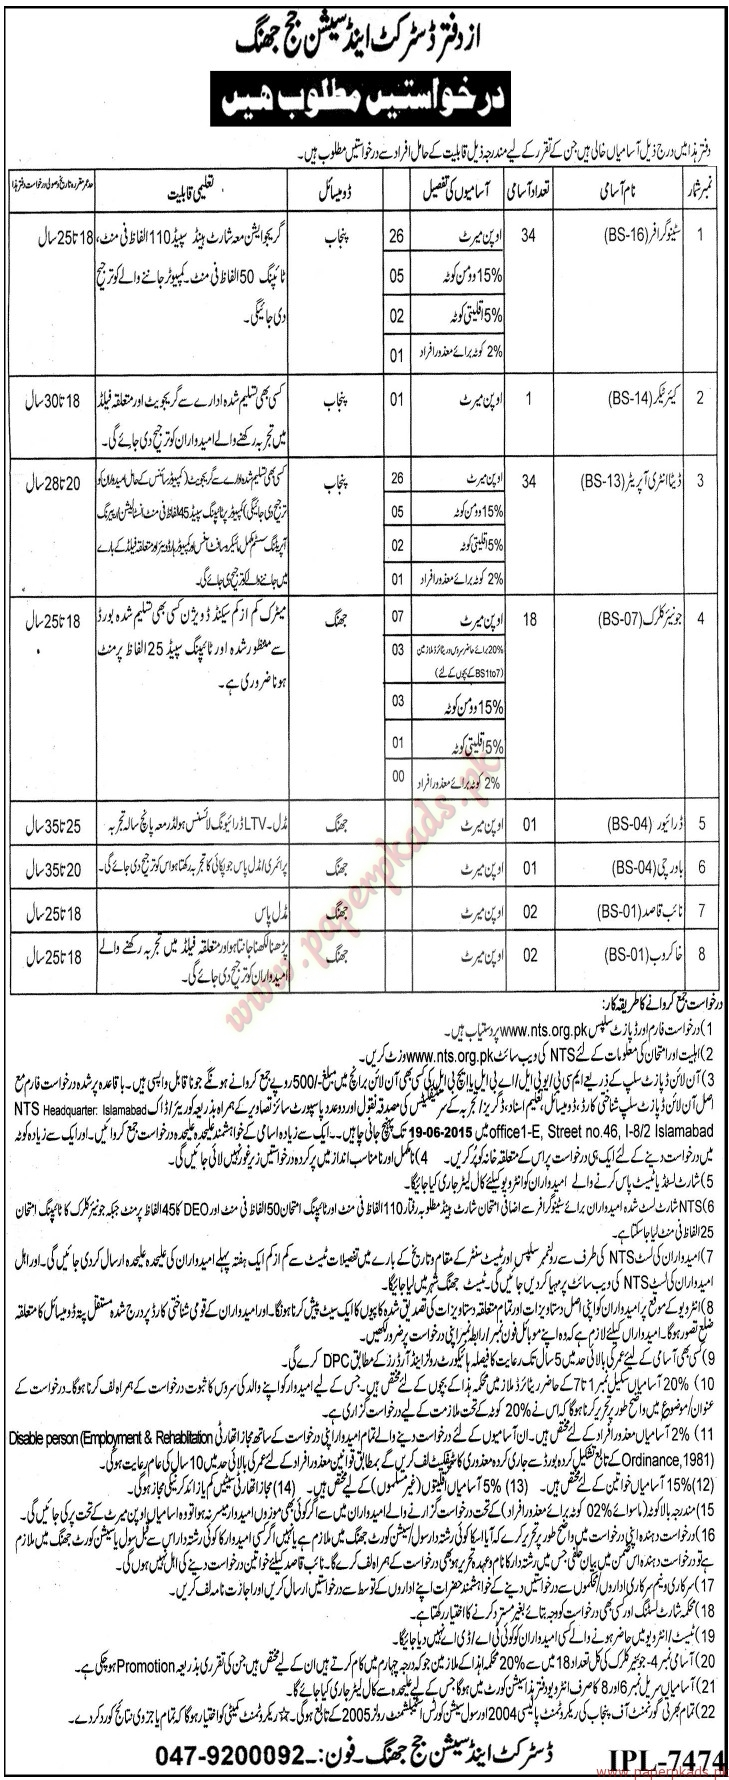 District and Session Judge Jhang Jobs - Jang Jobs ads 04 June 2015